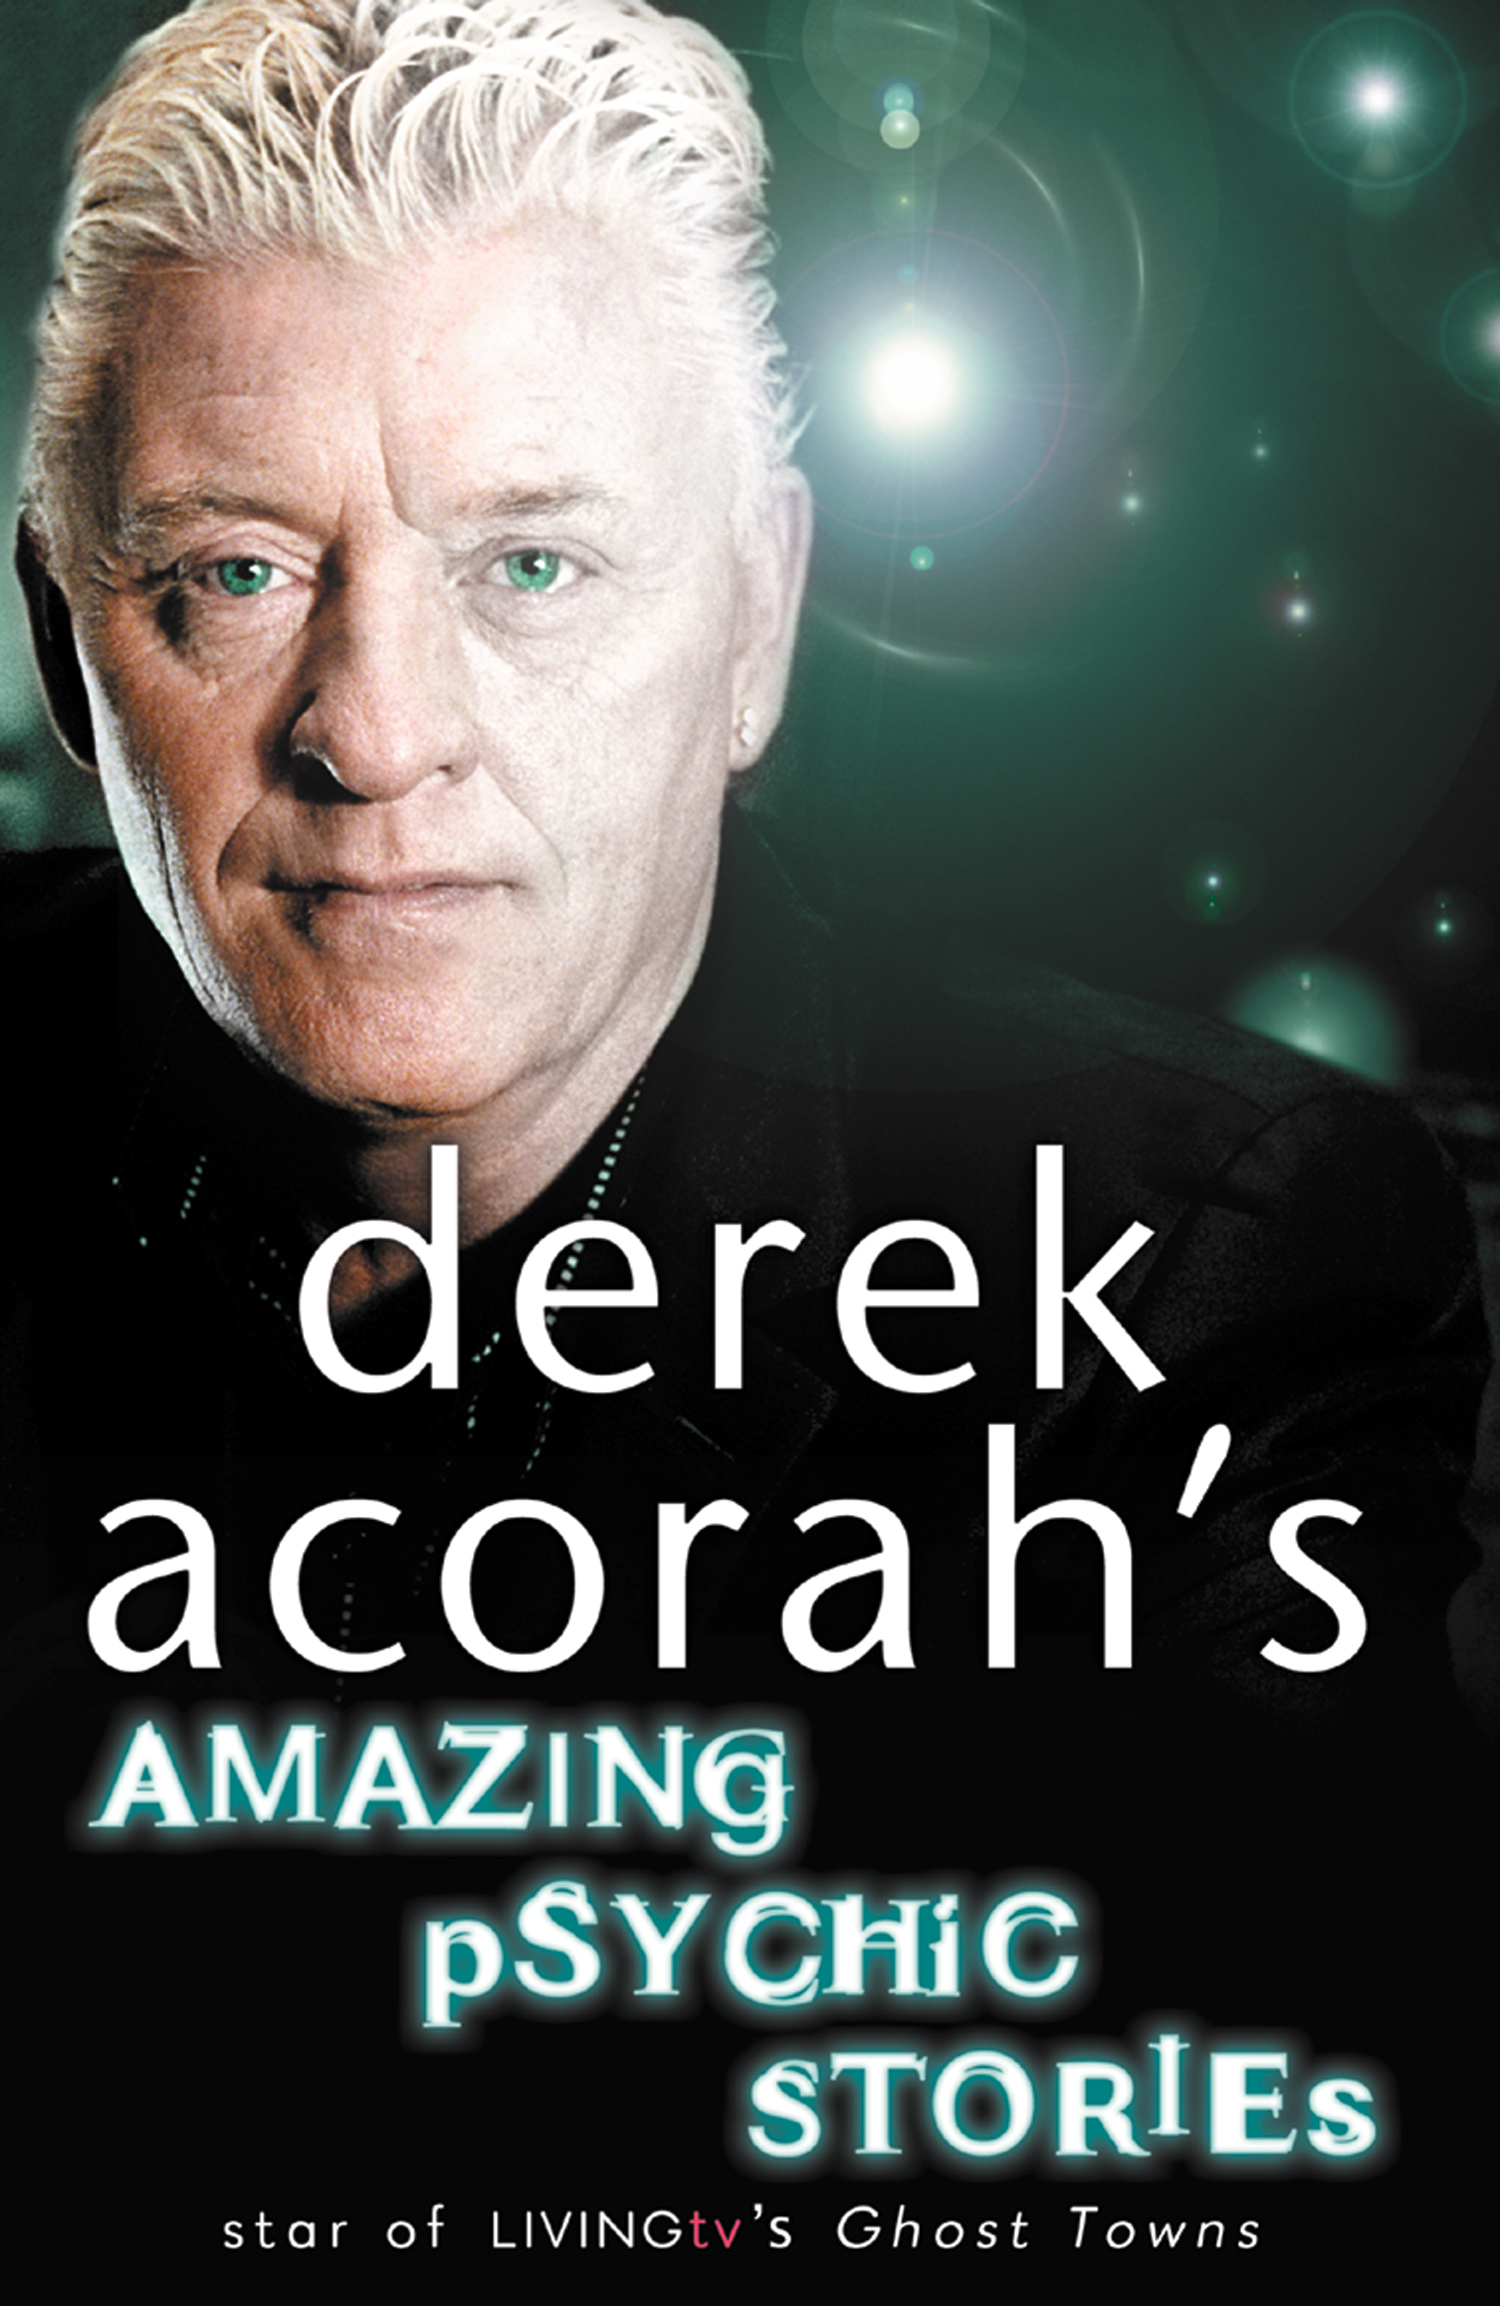 Derek Acorah?s Amazing Psychic Stories